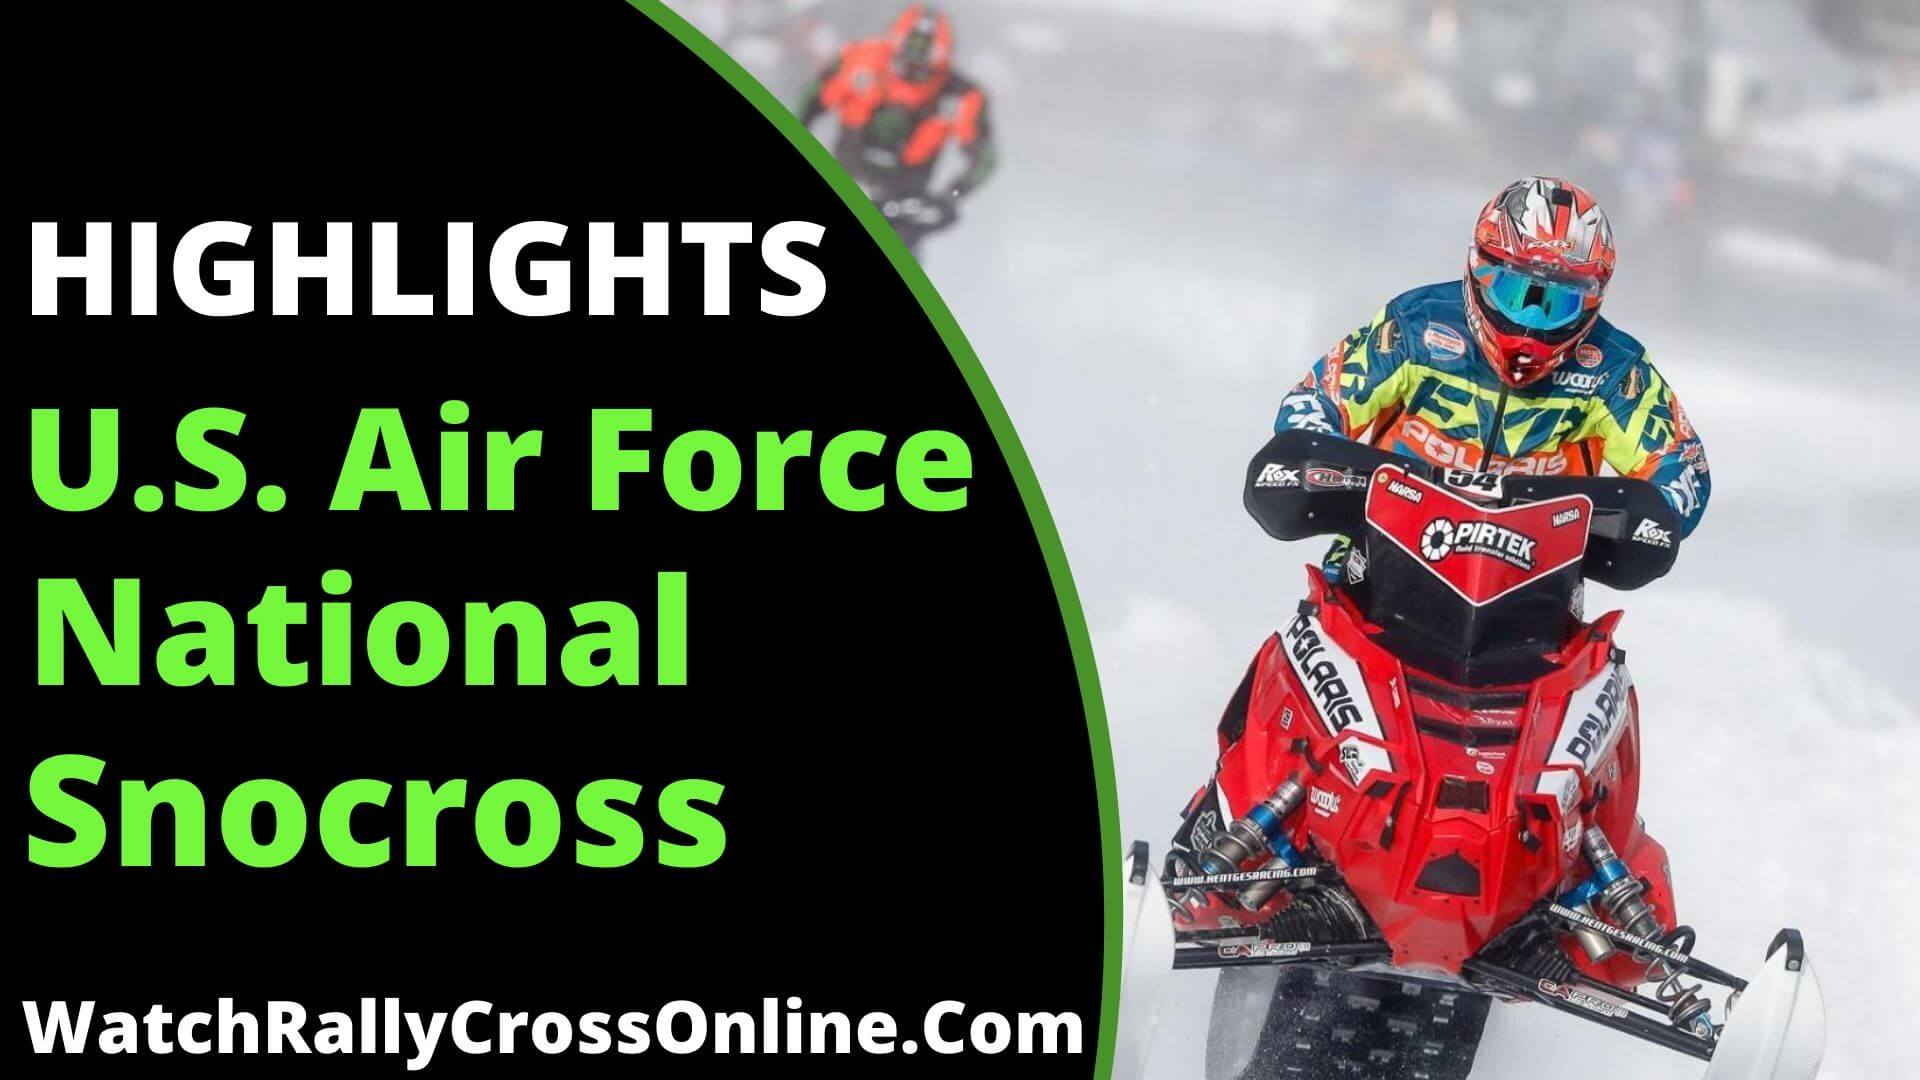 U.S. Air Force Snocross National Highlights 2019